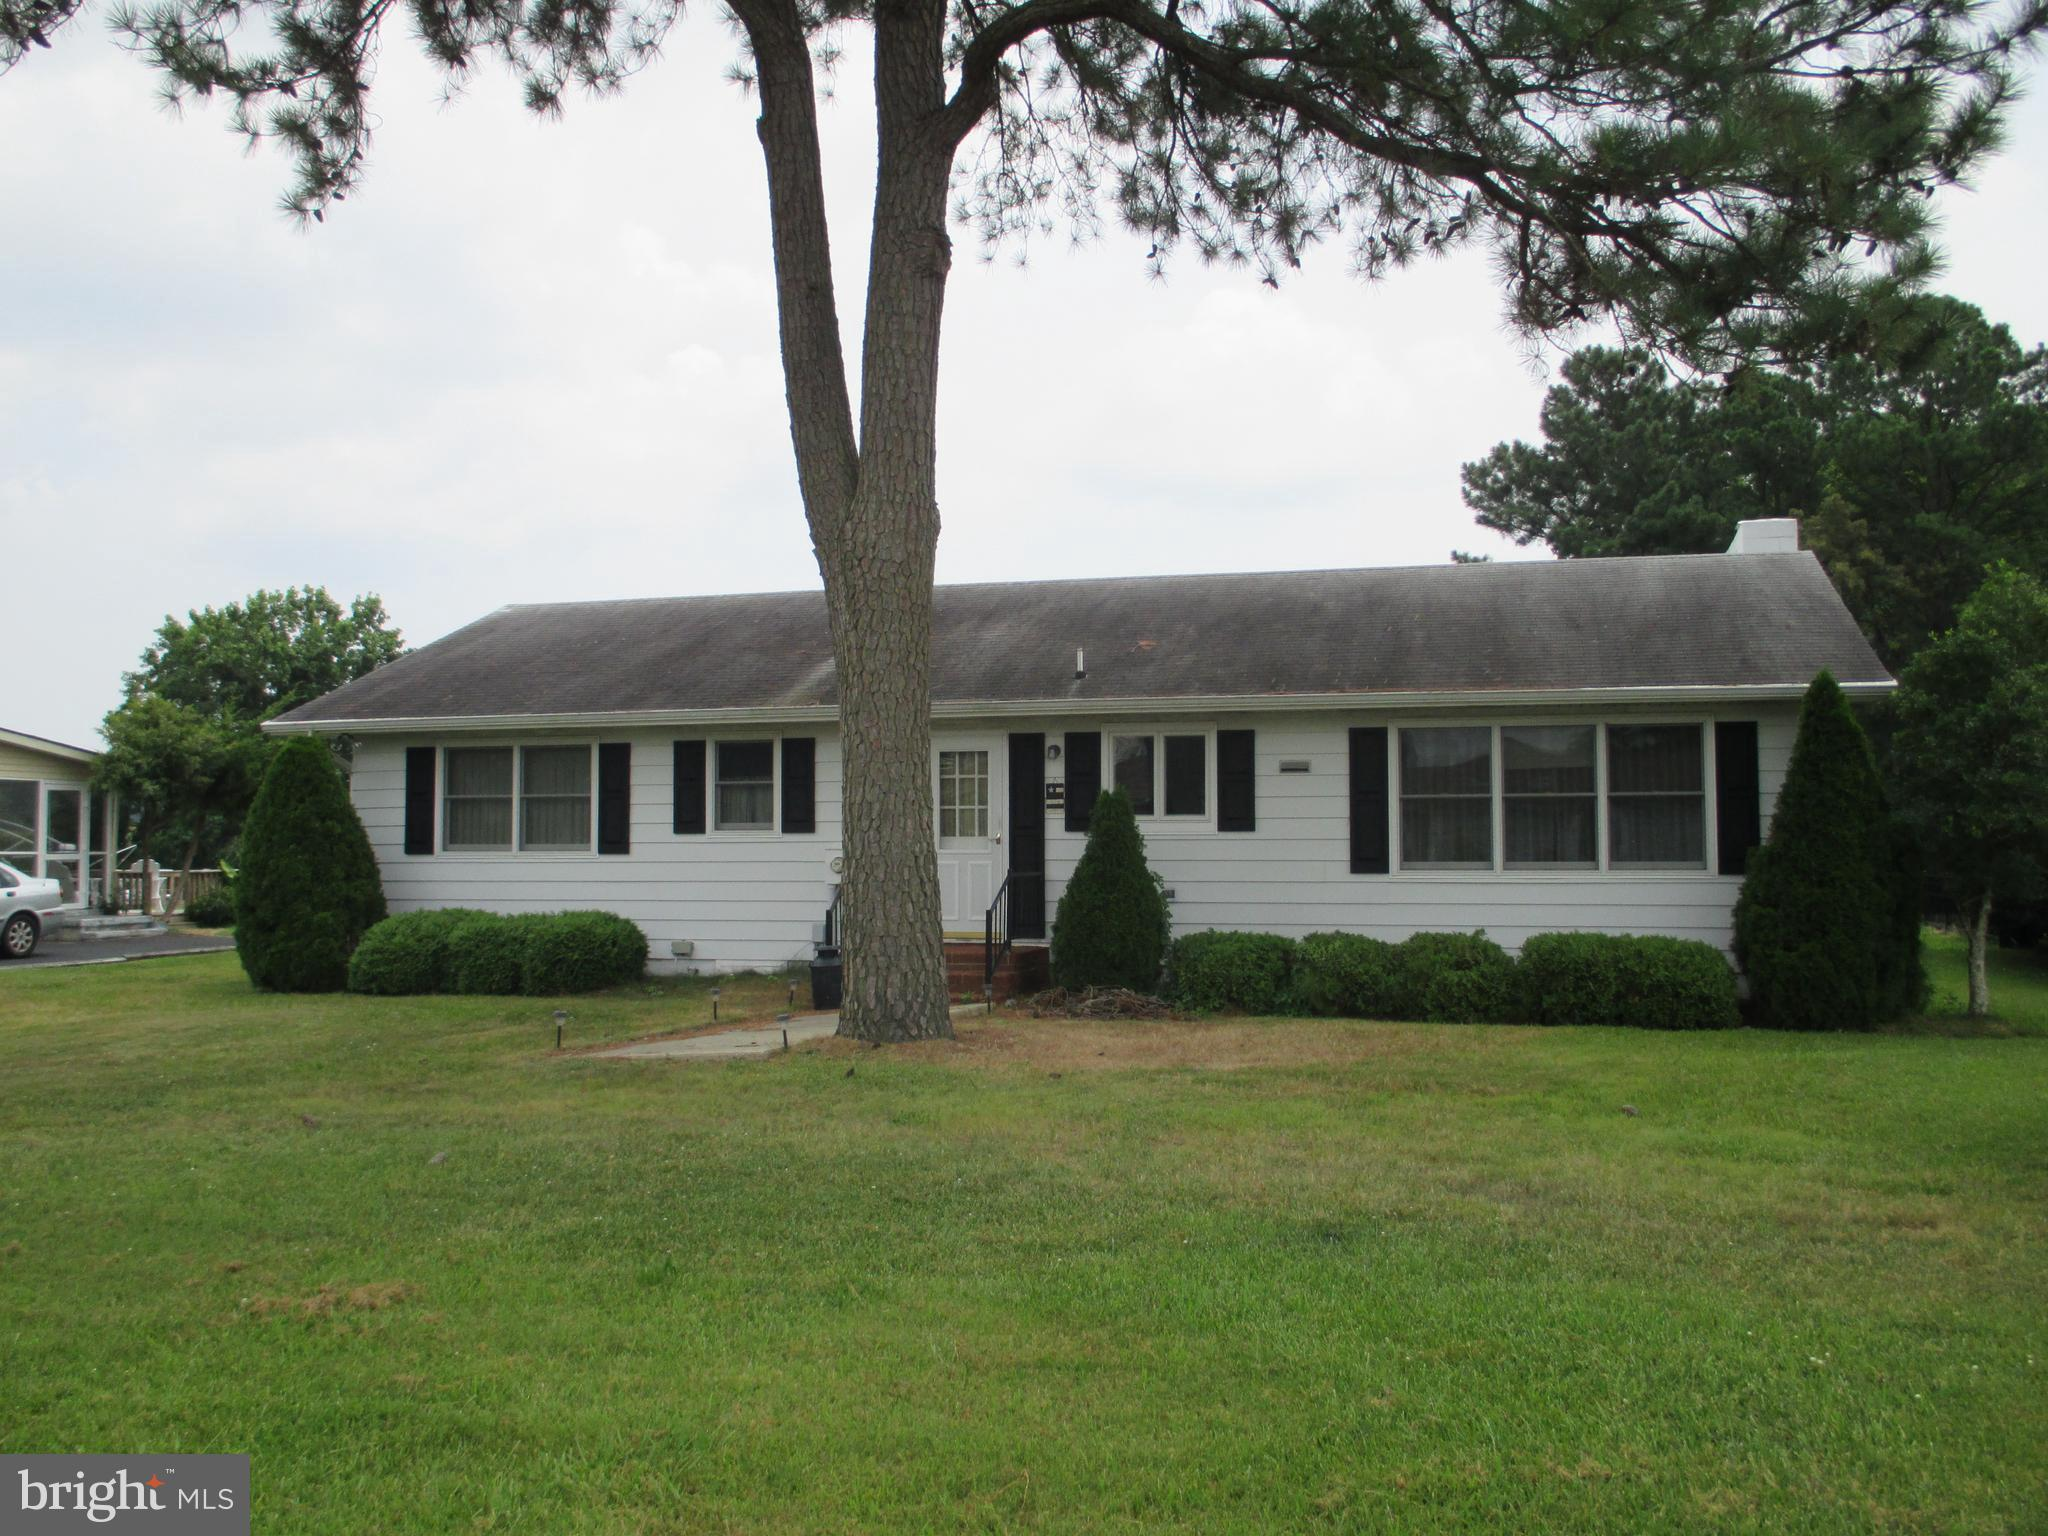 Original 1973 Ranch home on bulkheaded canal lot with step down dock, only 5 lots from open water, C